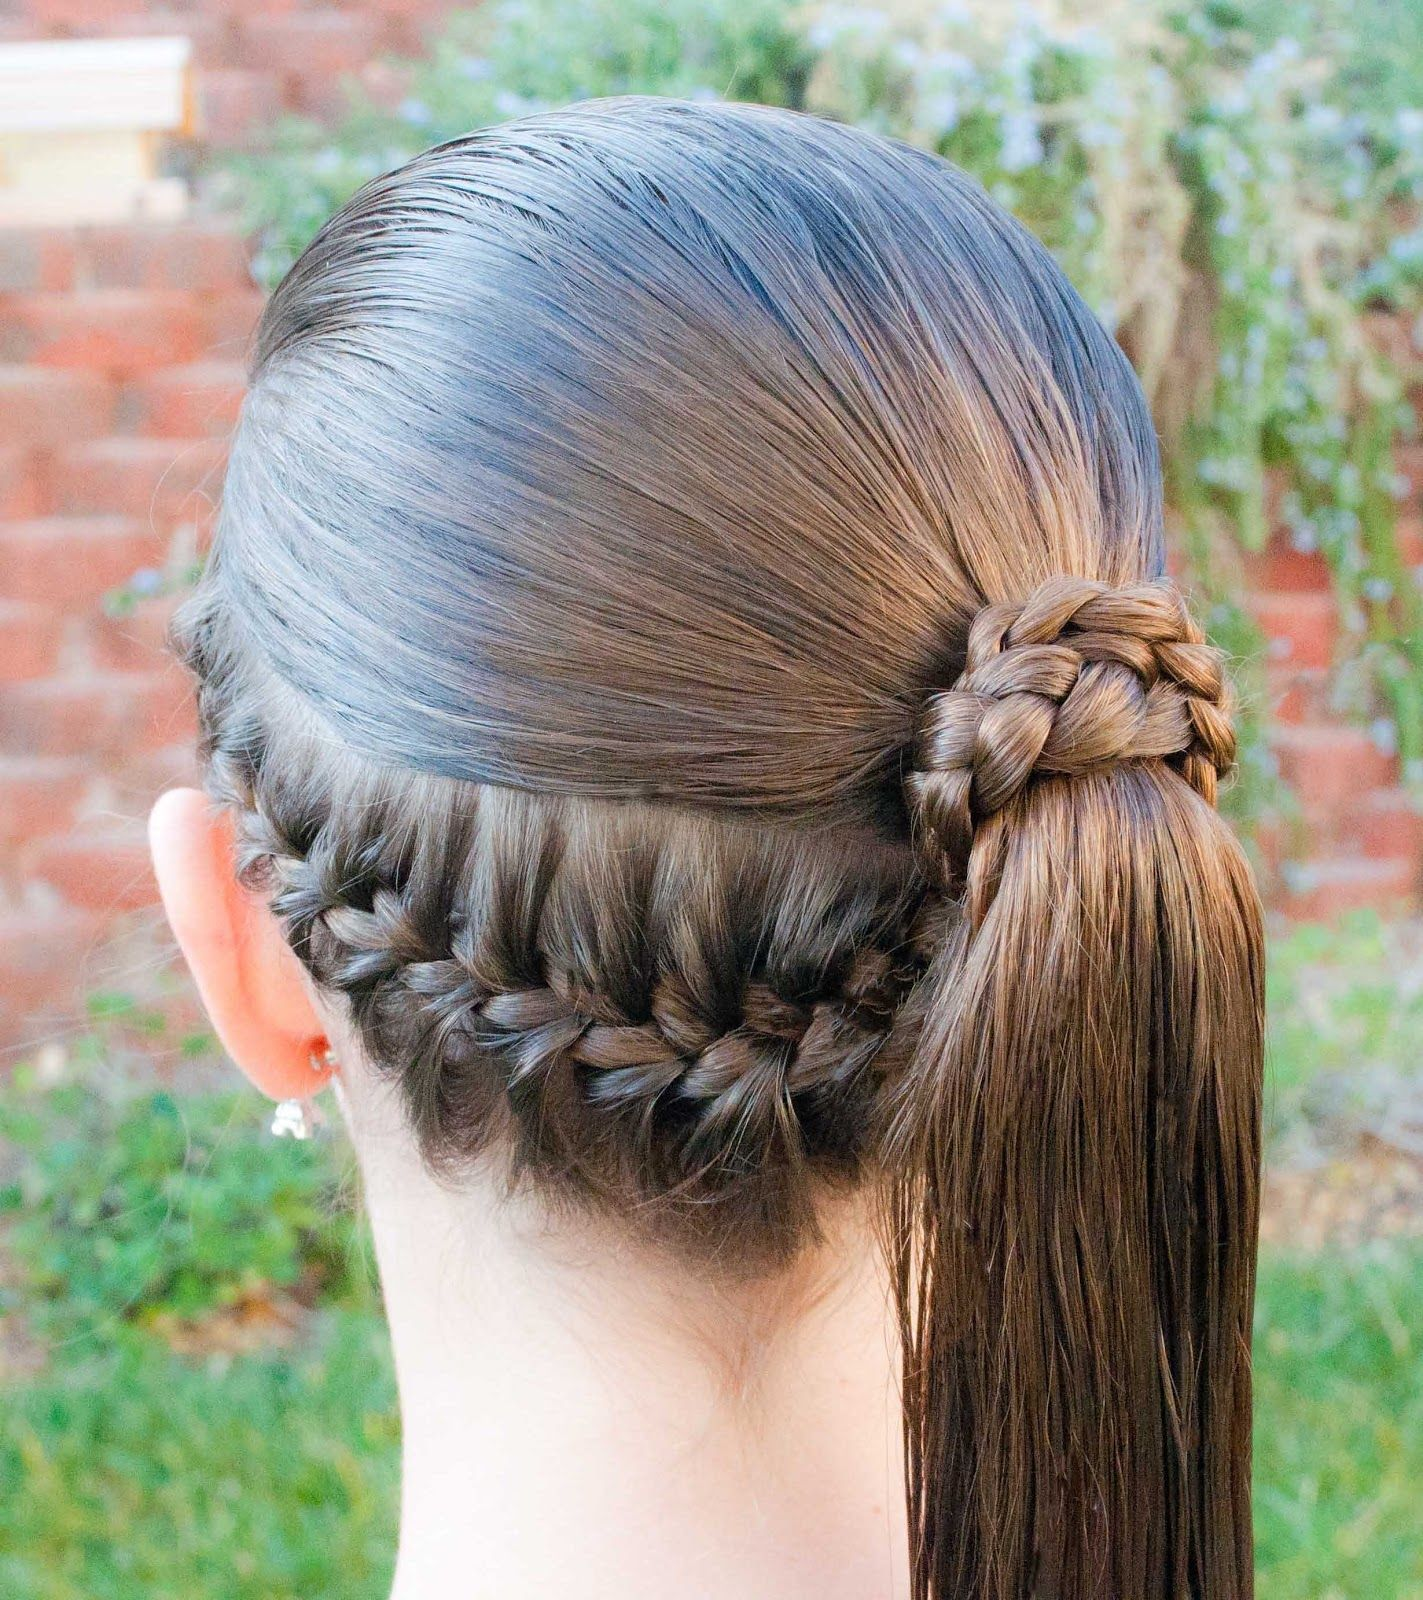 Braided ponytail braid hairstyle beauty peantedos